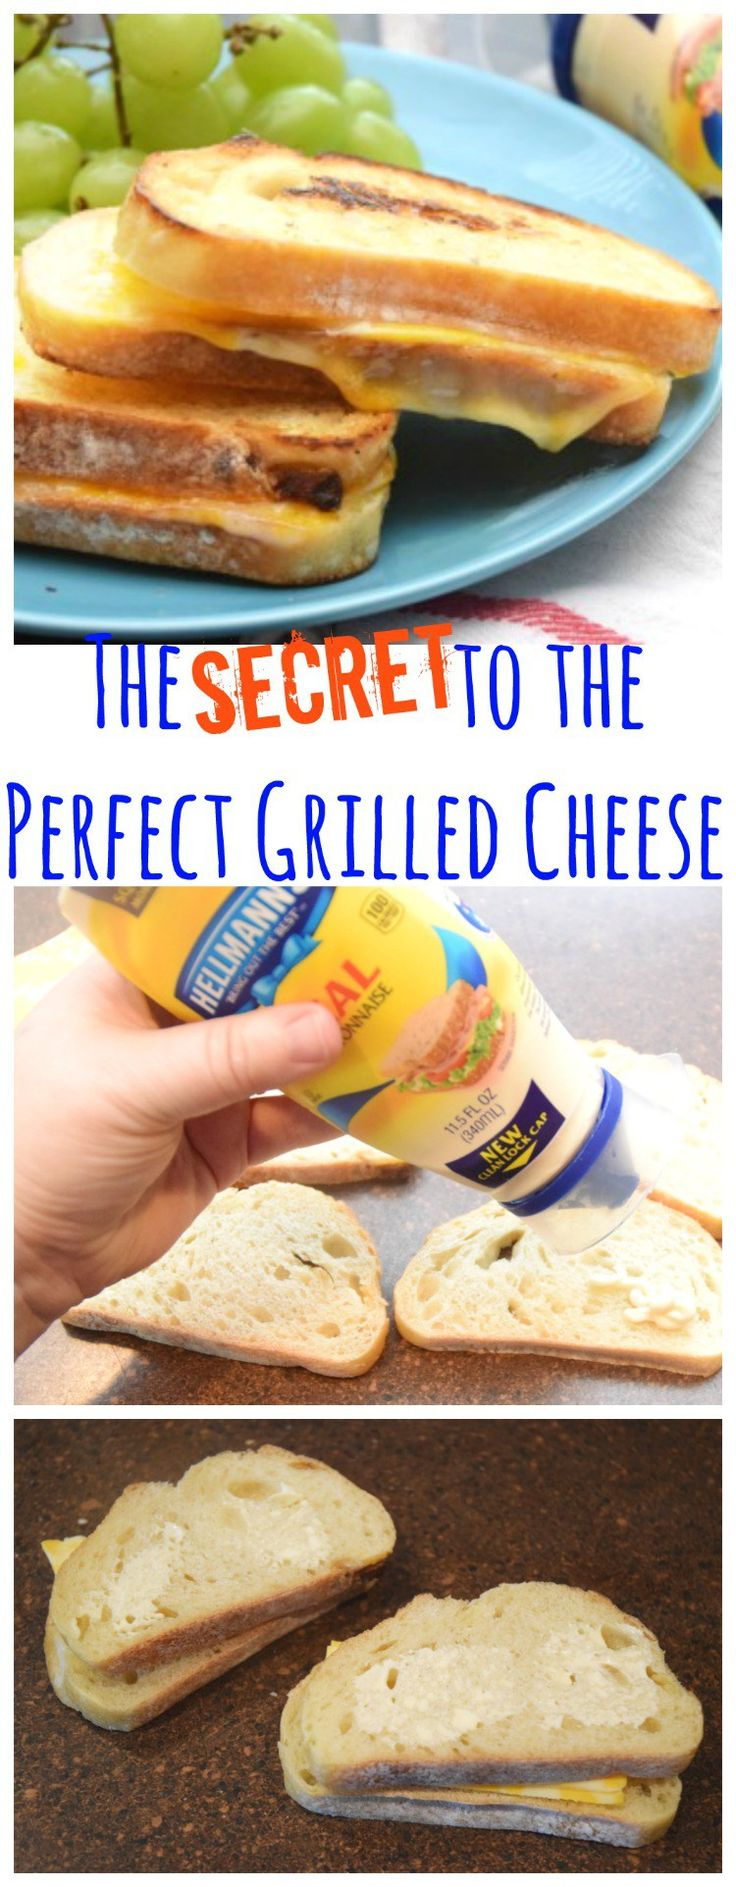 Grilled Cheese is perfect for a snack, lunch, or even dinner! And everybody loves it from kids to grownups.  Do you know the secret to a perfectly crisp grilled cheese? Come see! #ad #MakeMoreofMealtime